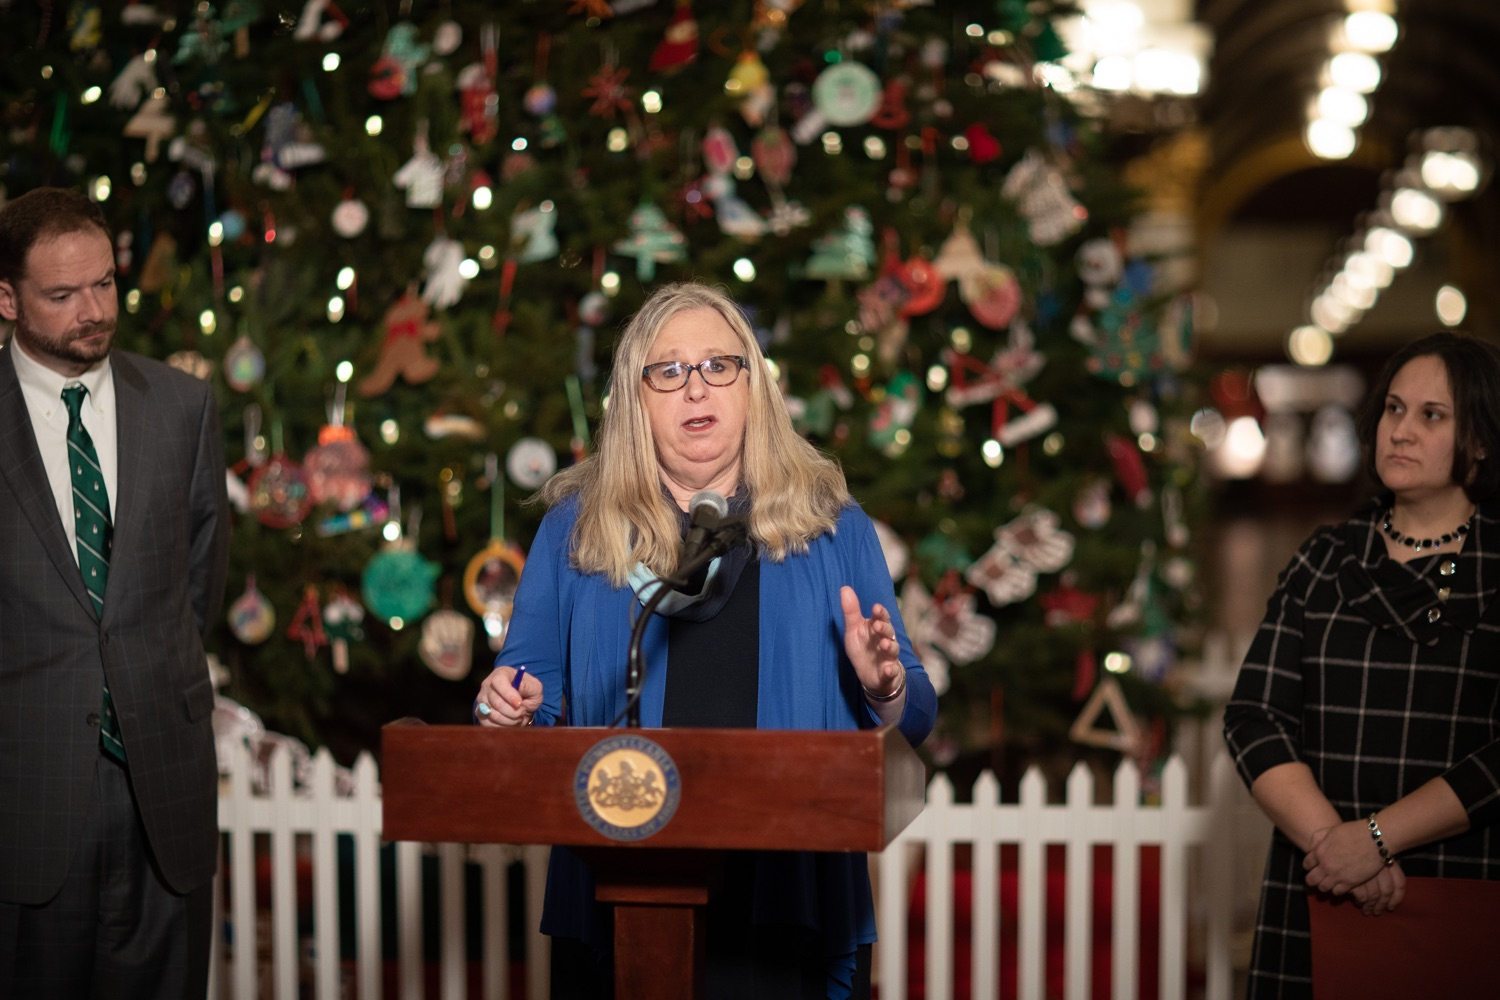 "<a href=""http://filesource.abacast.com/commonwealthofpa/photo/17627_ddap_mental_health_dz_015.JPG"" target=""_blank"">⇣ Download Photo<br></a>Secretary of Health Dr. Rachel Levine Speaking in the Capitol Rotunda.  Today, members of the Wolf Administration spoke in the state Capitol Rotunda to share resources and advice for individuals and families affected by mental health and substance use disorders (SUD) during the holiday season. Harrisburg, PA   December 20, 2019"